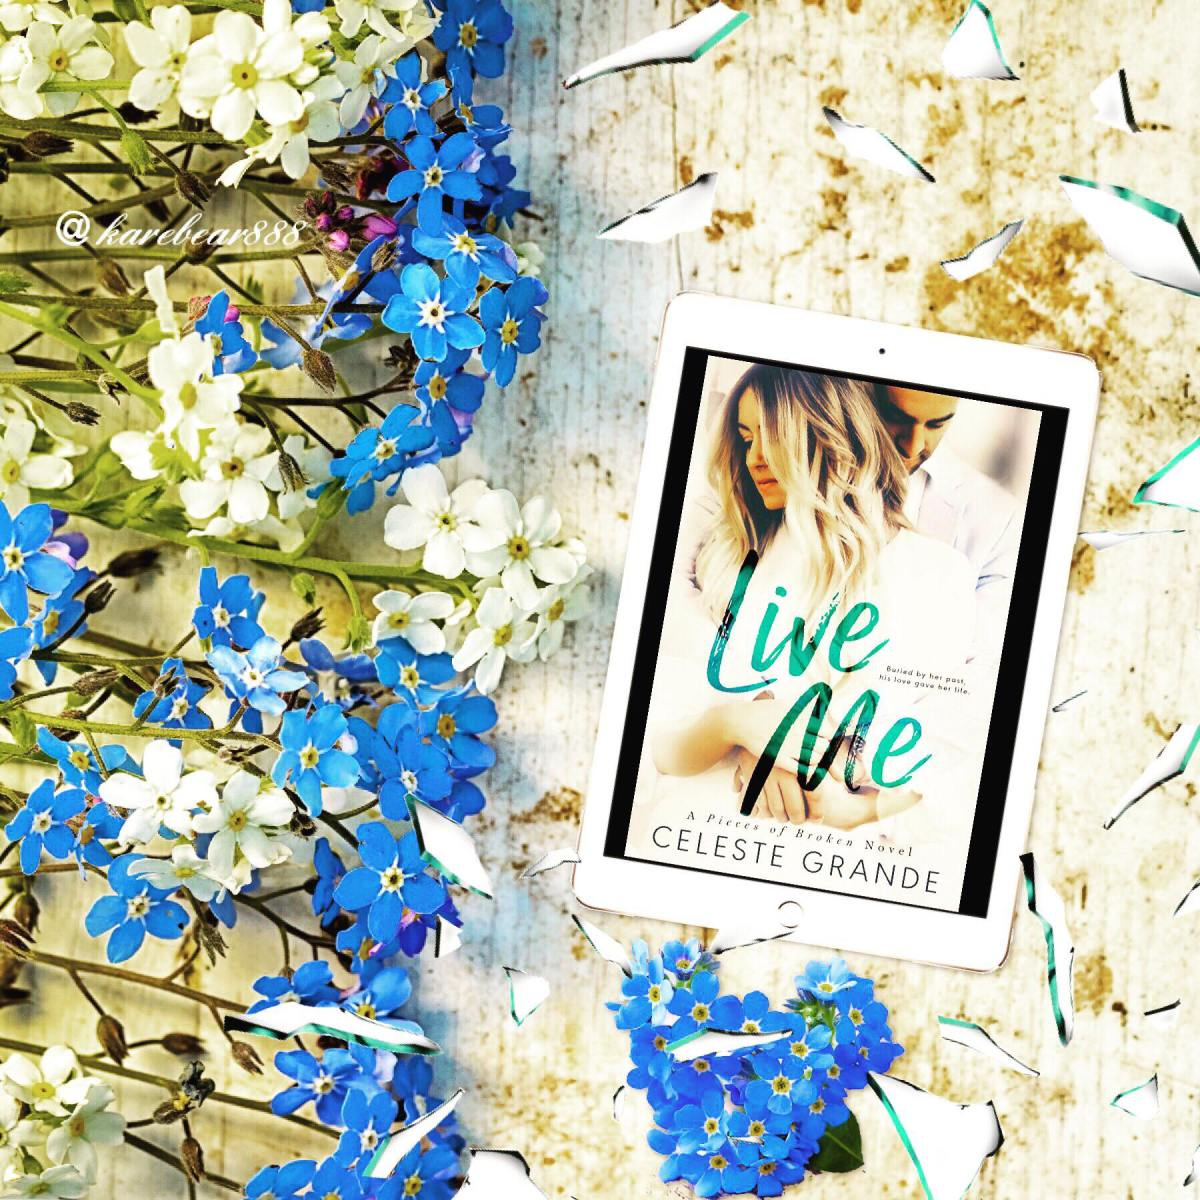 Review - Live Me by Celeste Grande